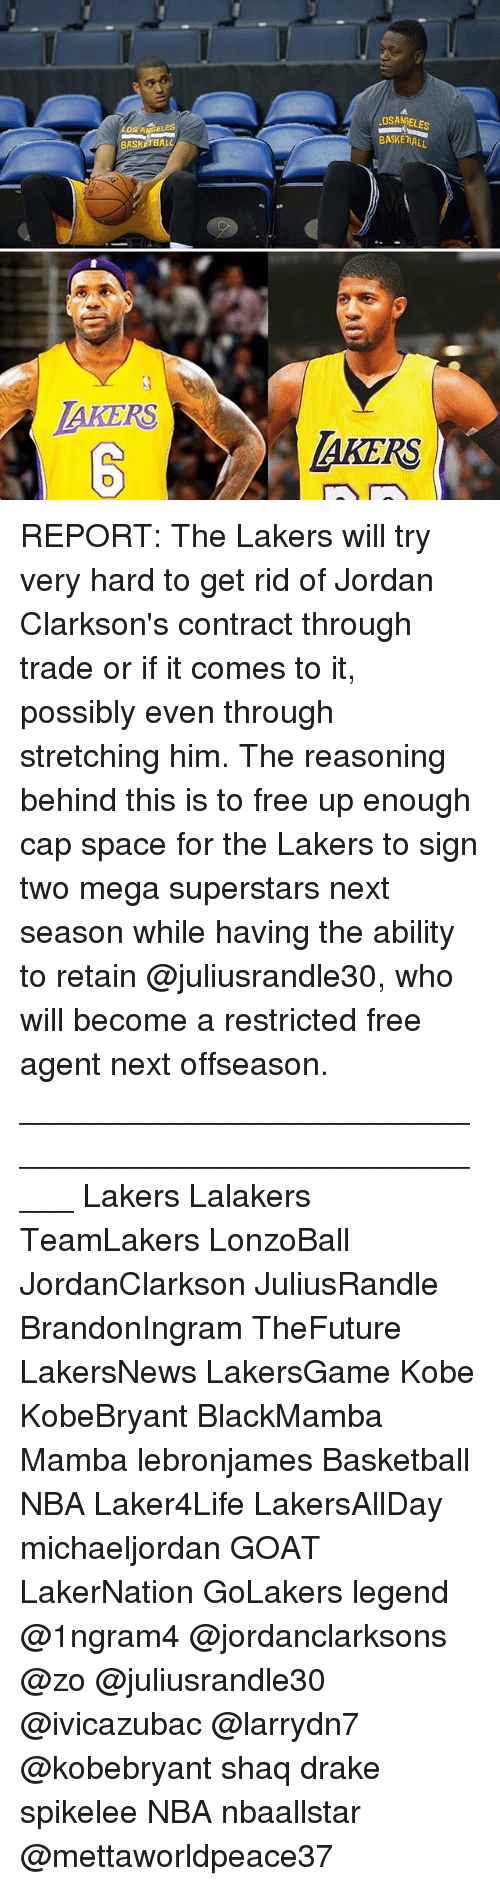 Basketball, Drake, and Los Angeles Lakers: Los ANDELES  BASKETBAL  OS ANRELES  BASKERALL  AKERS  AKERS REPORT: The Lakers will try very hard to get rid of Jordan Clarkson's contract through trade or if it comes to it, possibly even through stretching him. The reasoning behind this is to free up enough cap space for the Lakers to sign two mega superstars next season while having the ability to retain @juliusrandle30, who will become a restricted free agent next offseason. _____________________________________________________ Lakers Lalakers TeamLakers LonzoBall JordanClarkson JuliusRandle BrandonIngram TheFuture LakersNews LakersGame Kobe KobeBryant BlackMamba Mamba lebronjames Basketball NBA Laker4Life LakersAllDay michaeljordan GOAT LakerNation GoLakers legend @1ngram4 @jordanclarksons @zo @juliusrandle30 @ivicazubac @larrydn7 @kobebryant shaq drake spikelee NBA nbaallstar @mettaworldpeace37